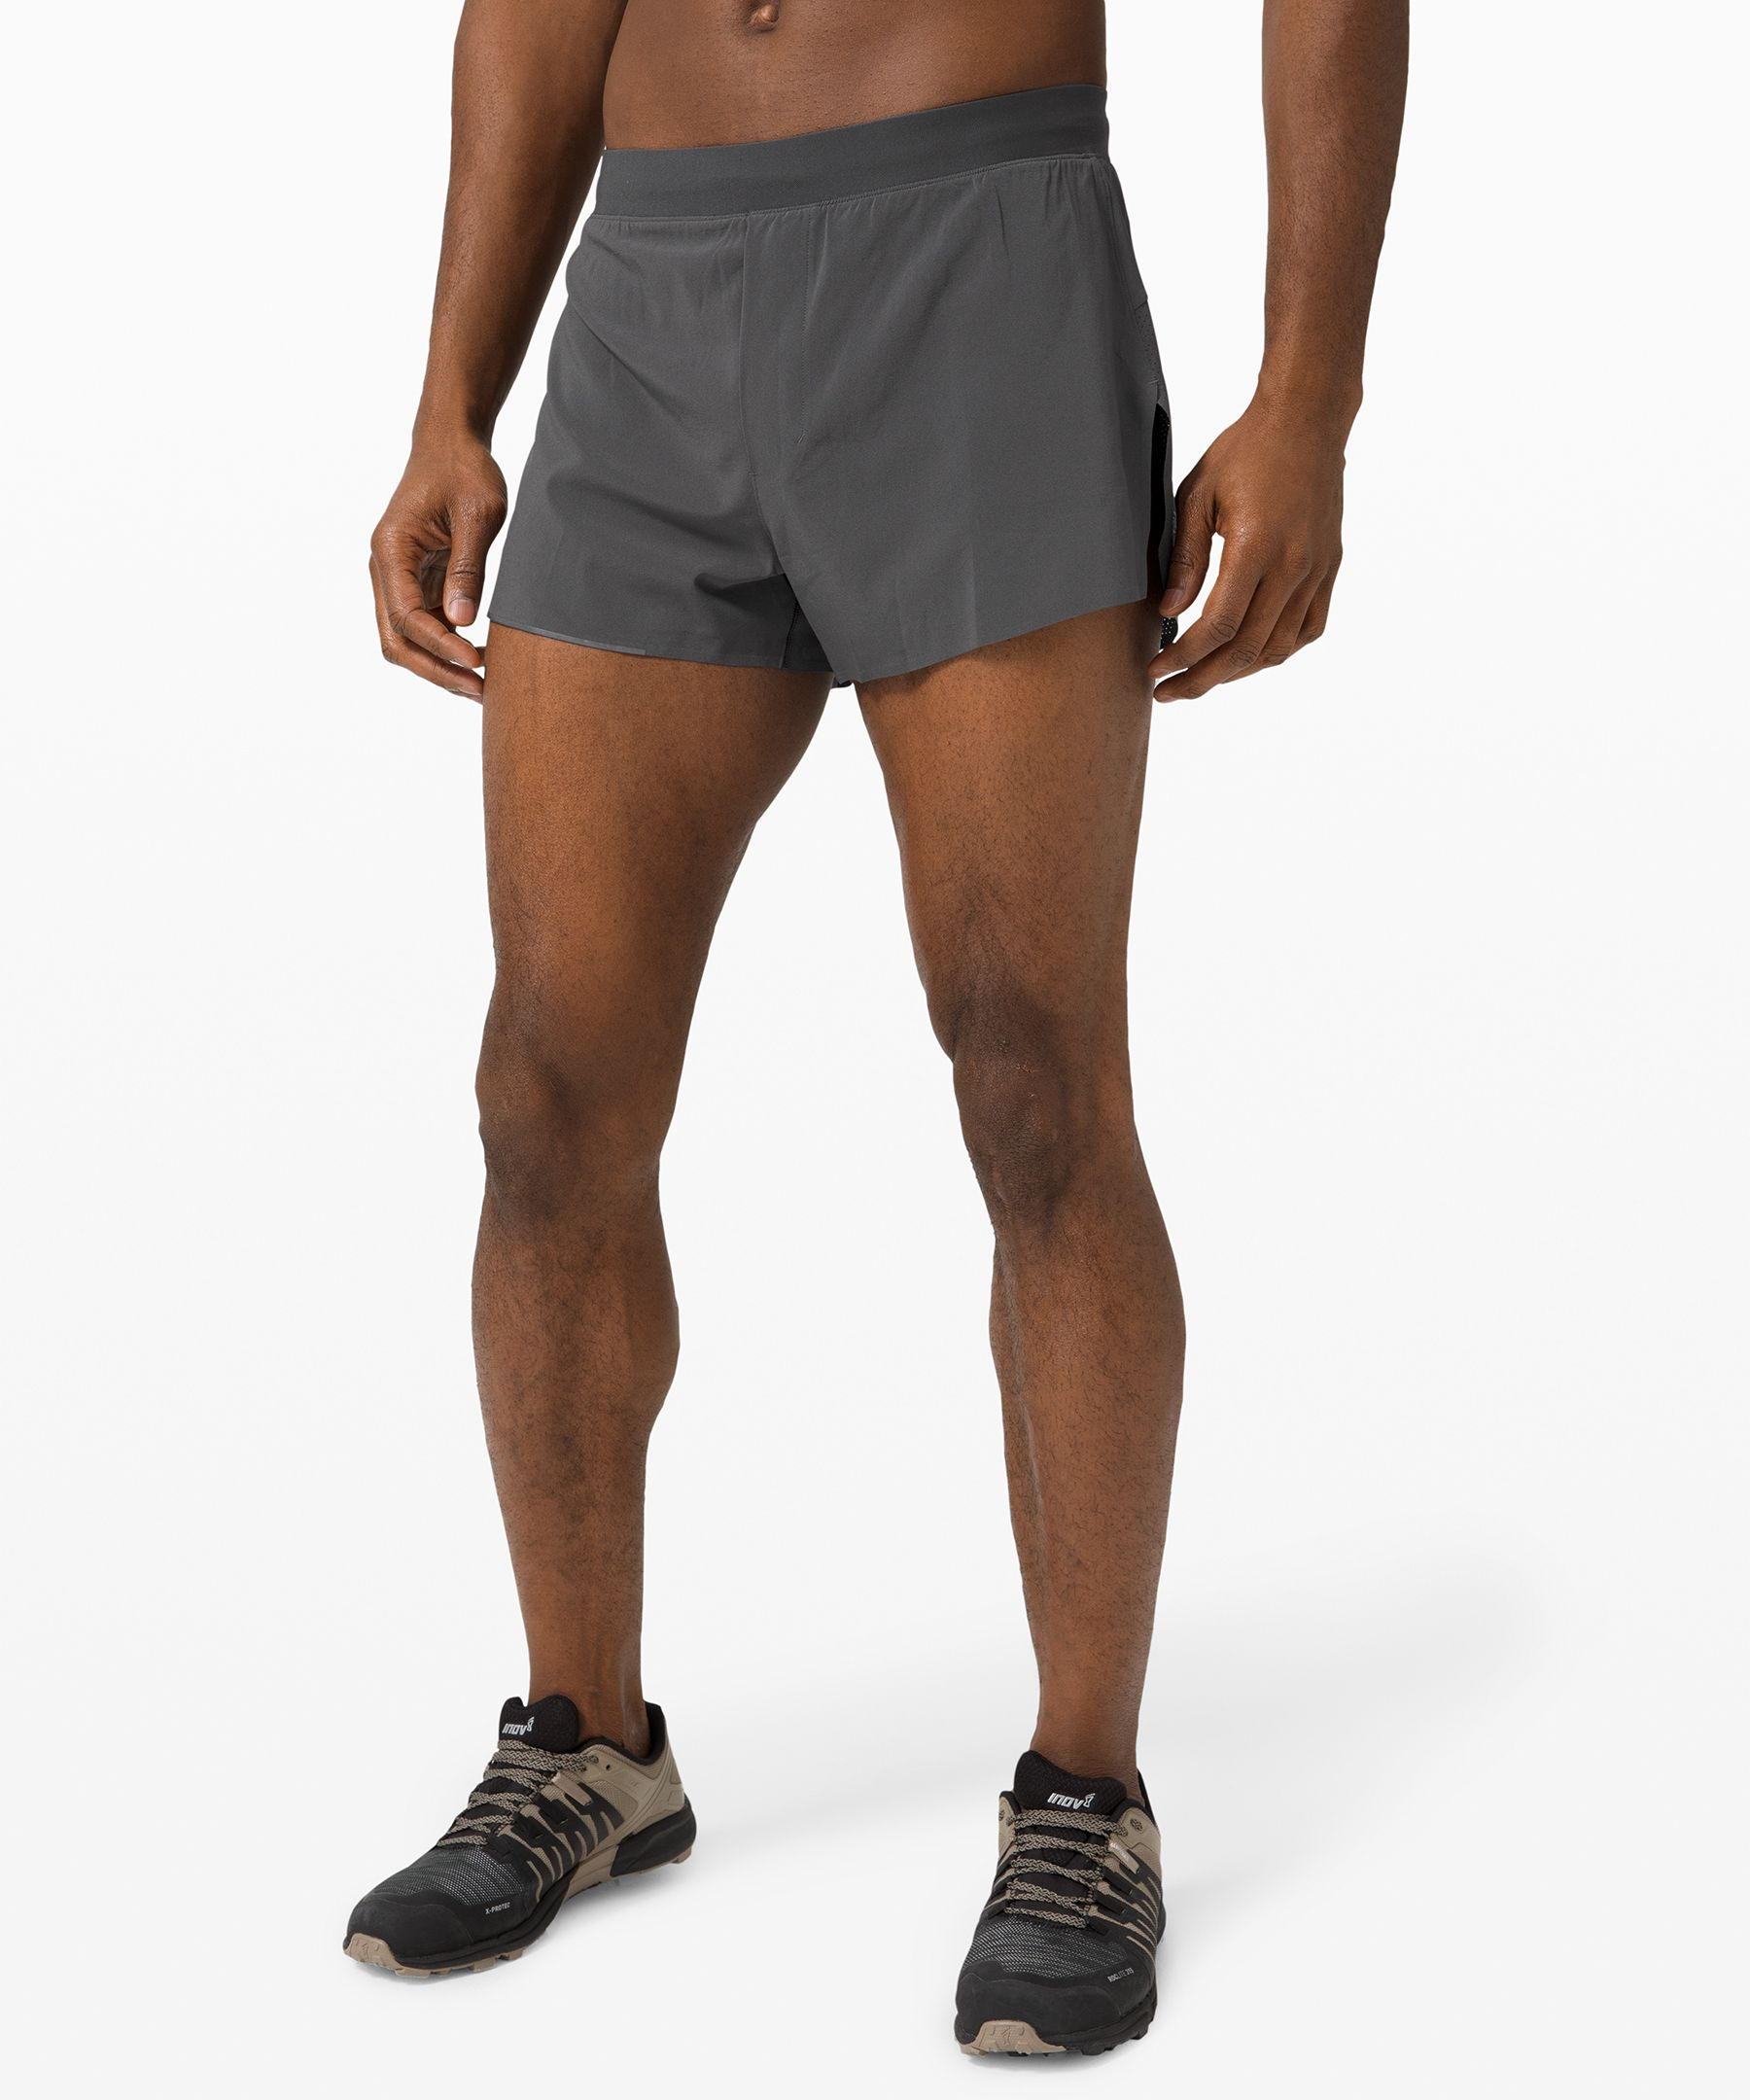 Power through your last mile  with nothing holding you back.  These lined shorts are made  with a 3\